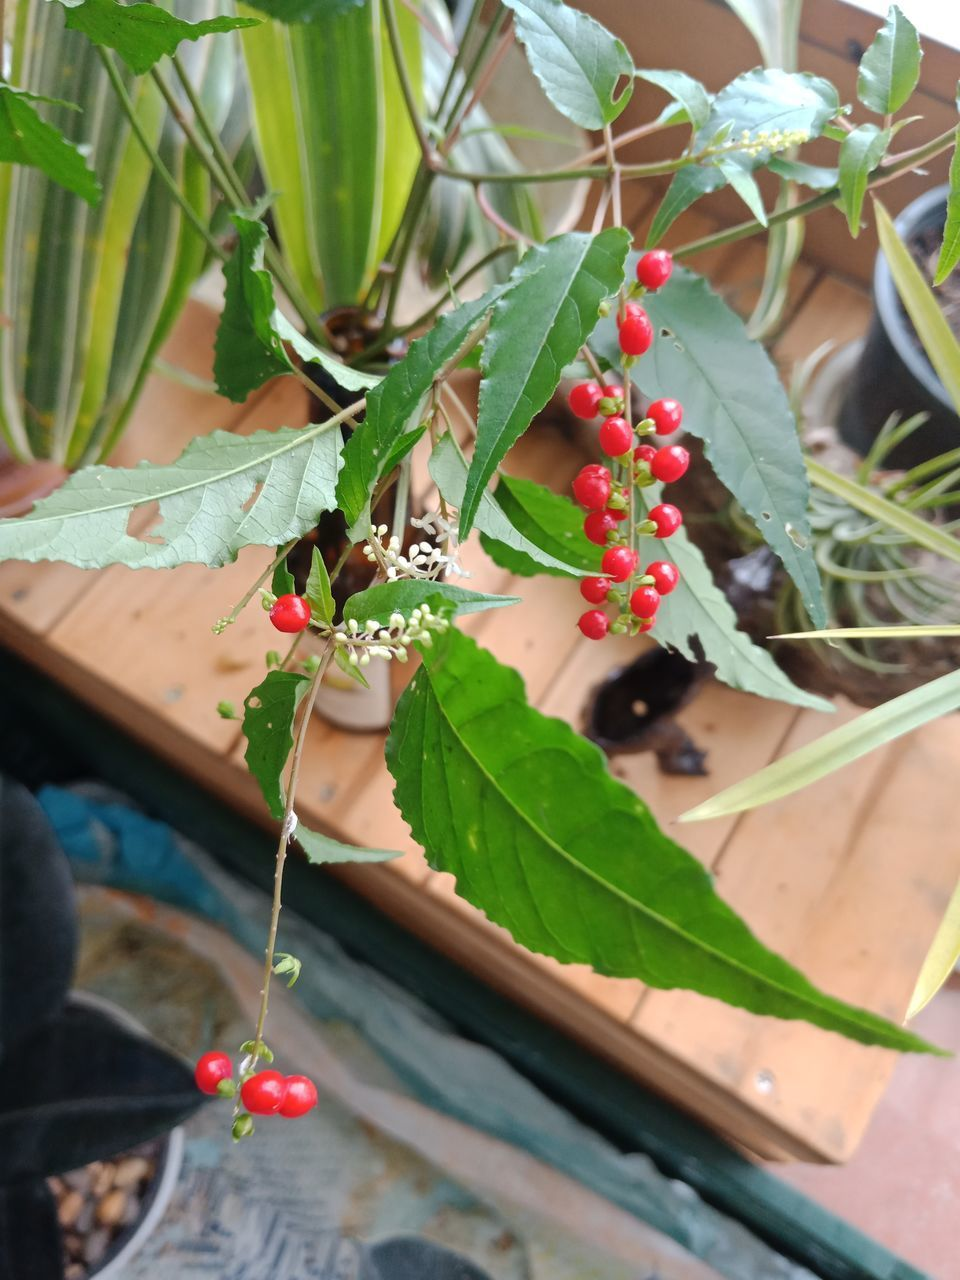 HIGH ANGLE VIEW OF BERRIES ON POTTED PLANTS